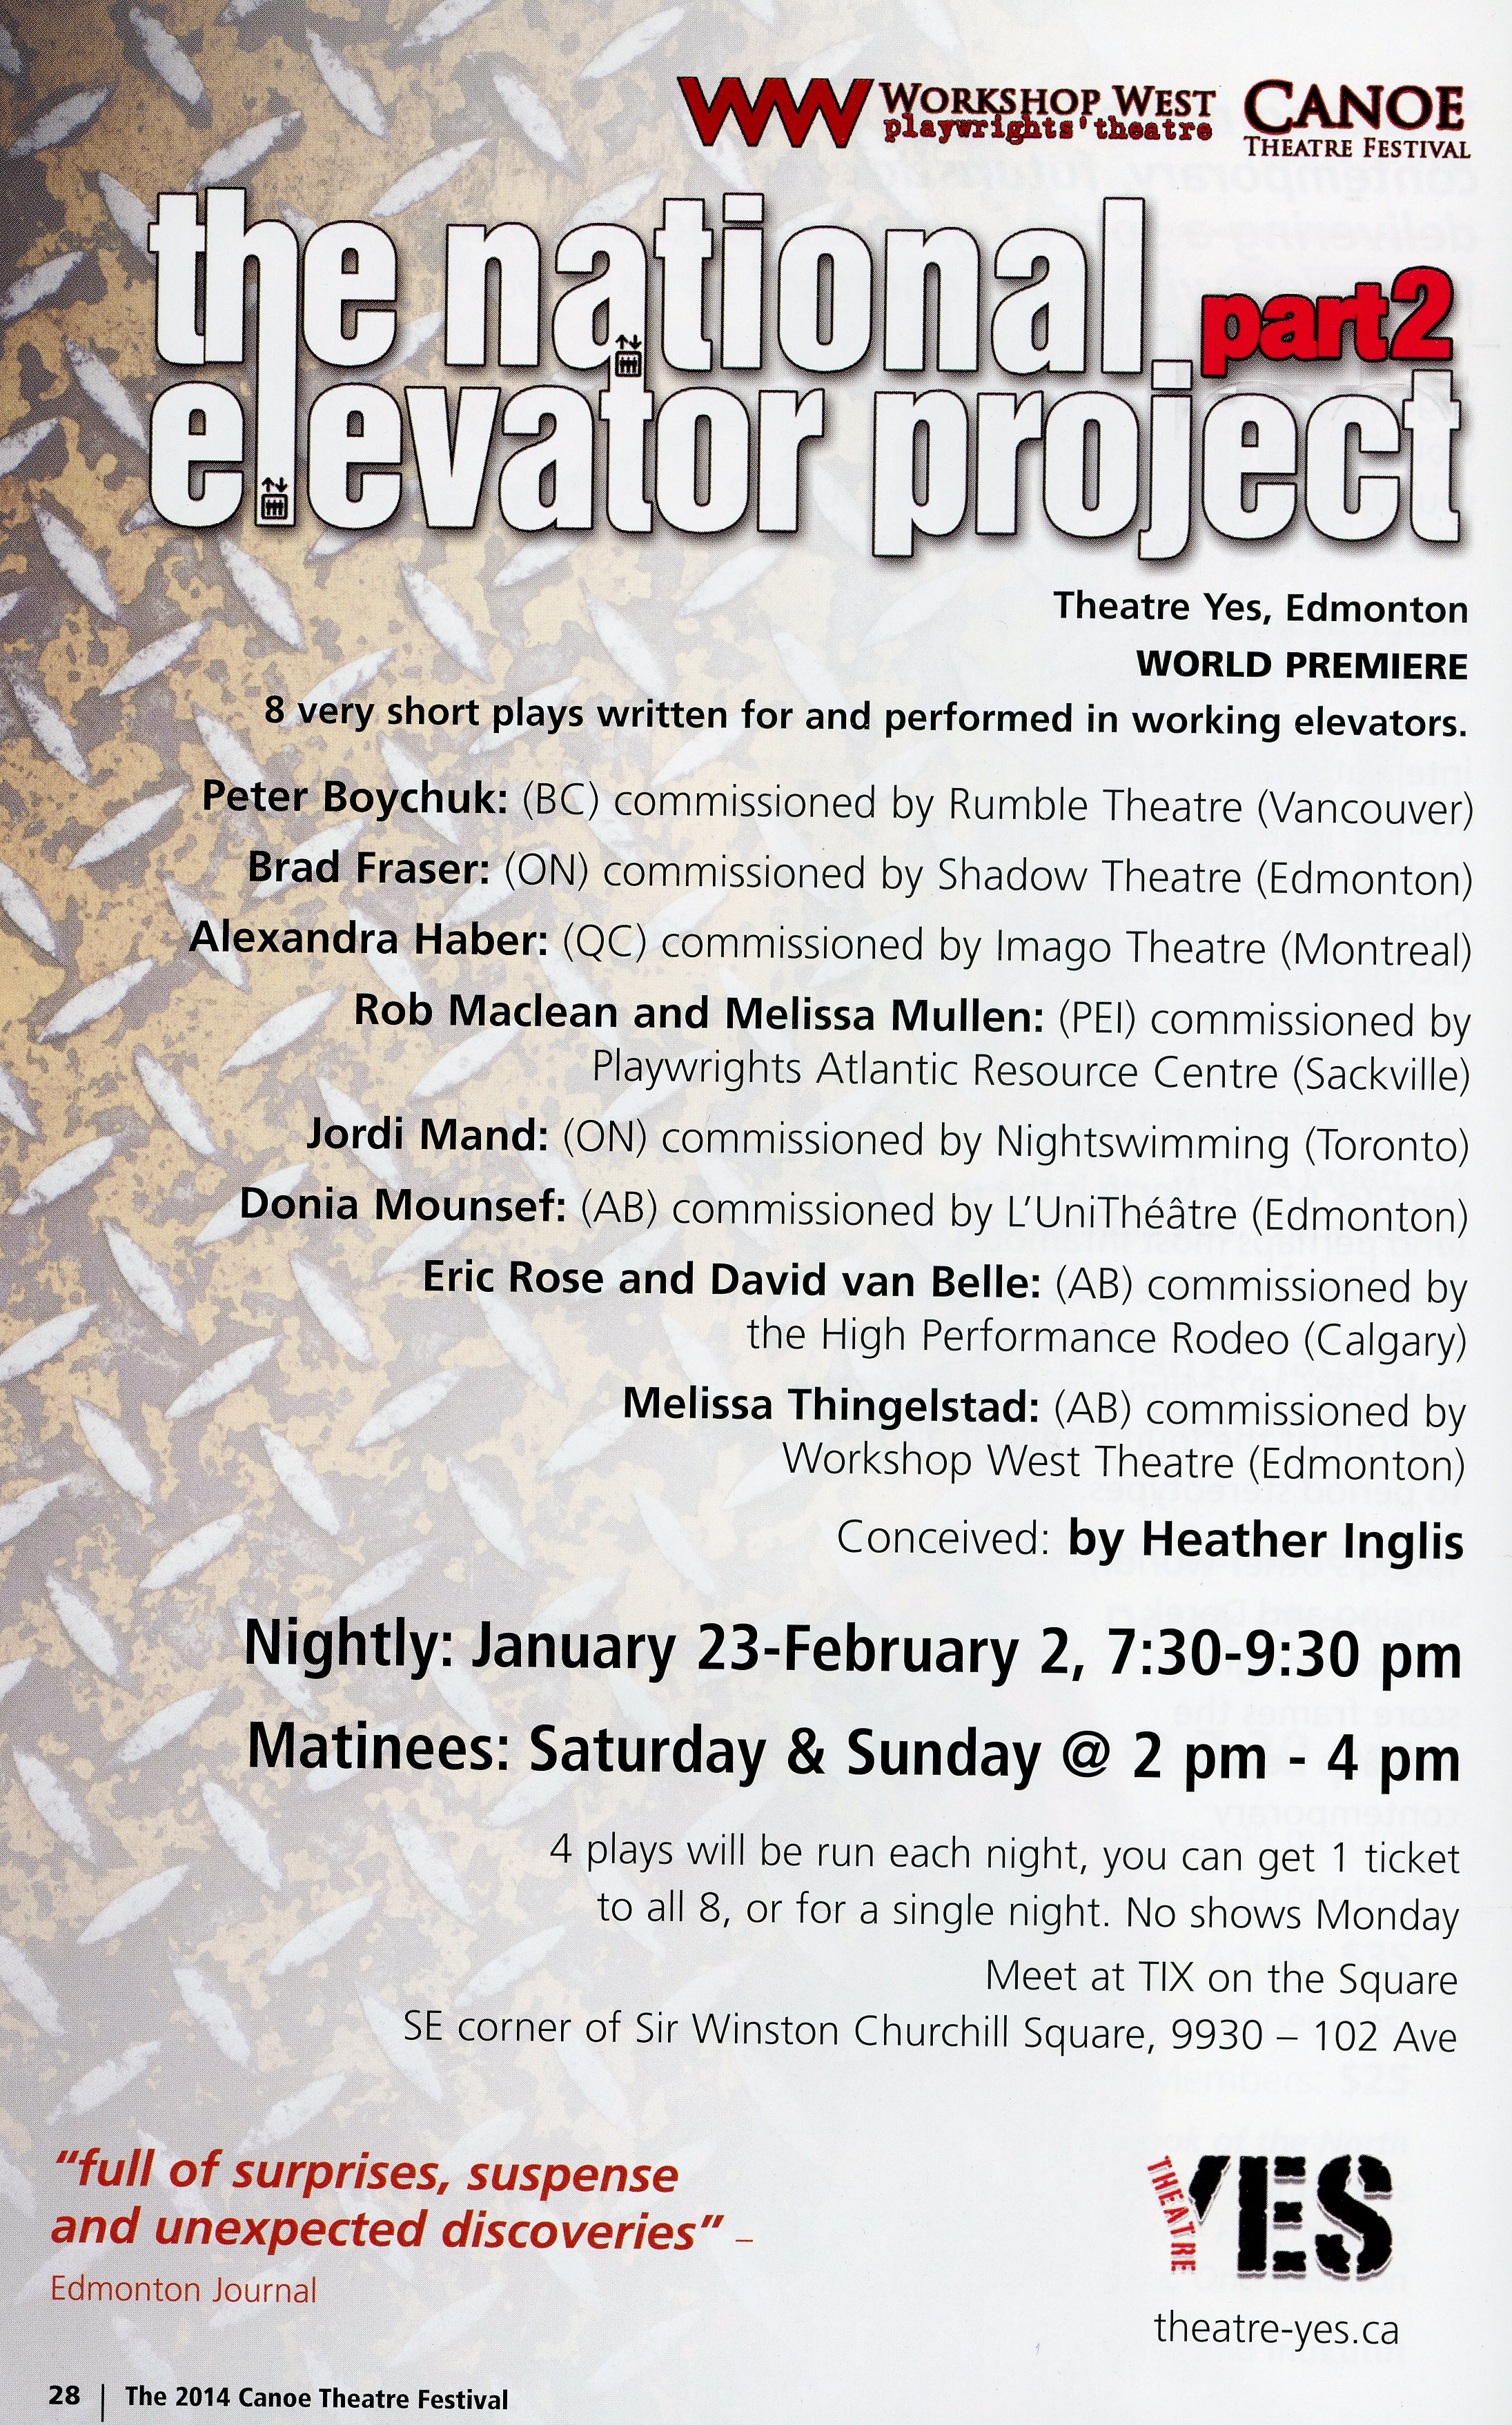 The Canoe Theatre Festival (January 2014)-Production Information-The National Elevator Project Part 2_JPEG.jpg